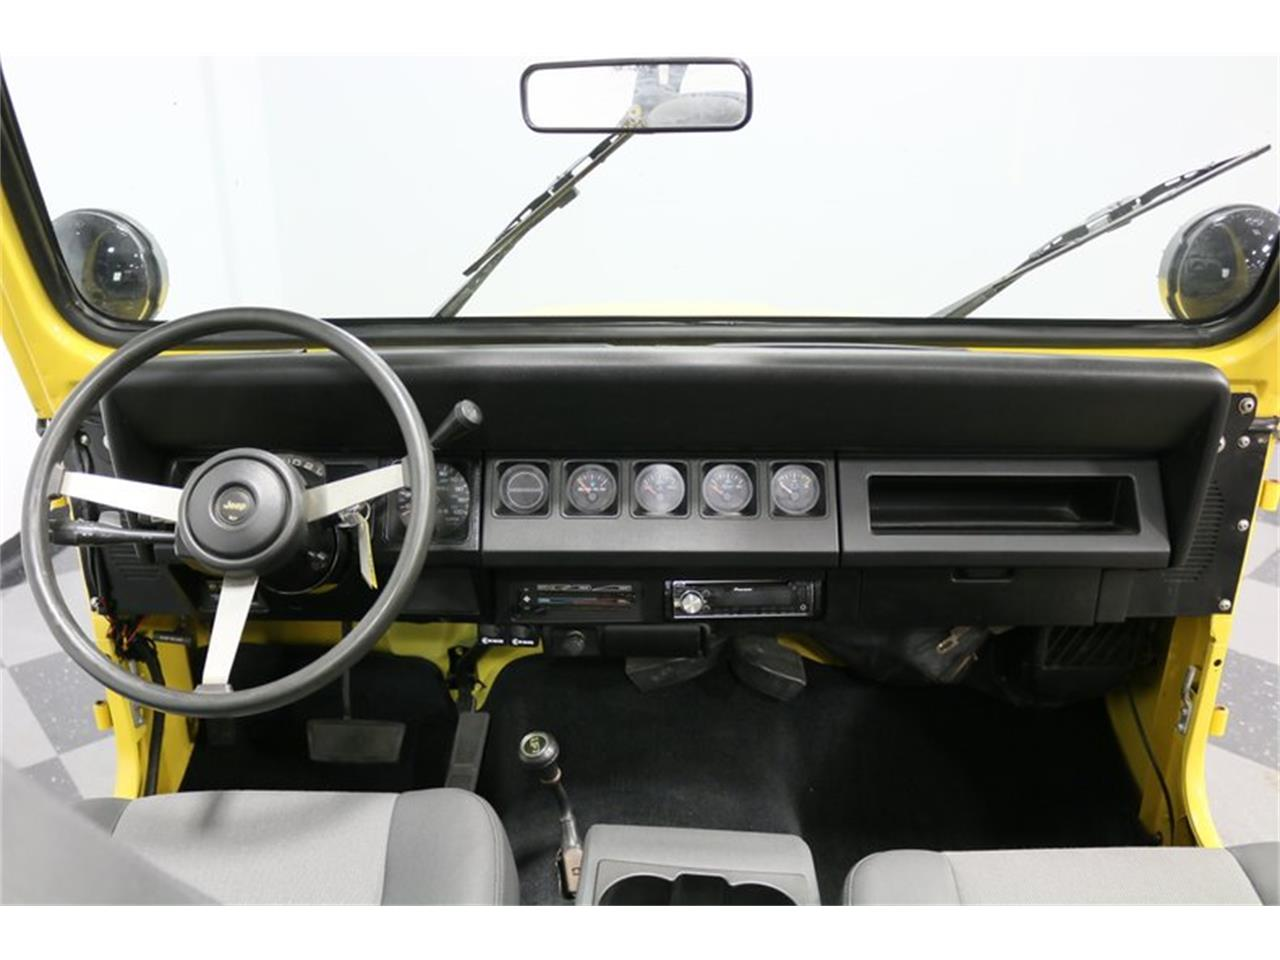 Large Picture of '93 Wrangler located in Texas Offered by Streetside Classics - Dallas / Fort Worth - P701